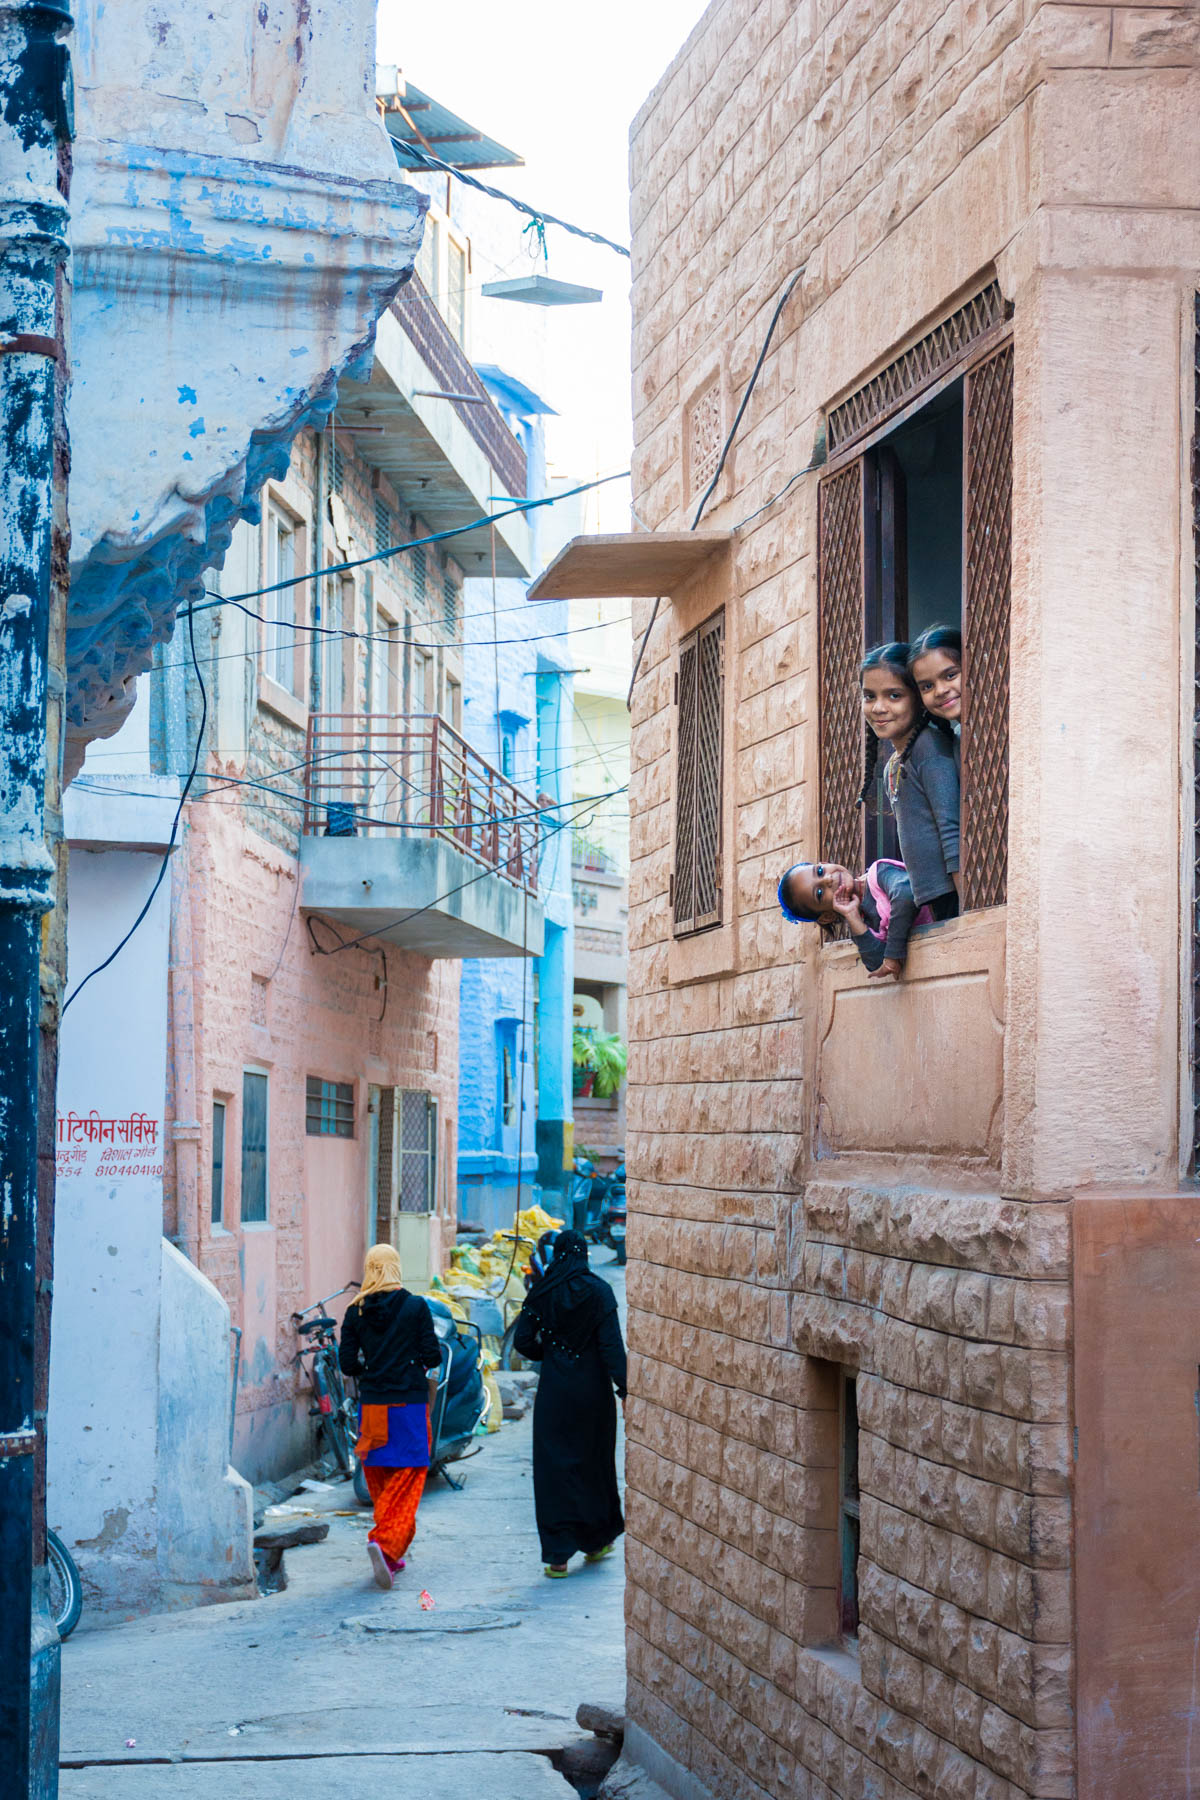 Photo essay about the streets and people of the Blue City of Jodhpur, Rajasthan, India - Playful girls in Jodhpur, India - Lost With Purpose